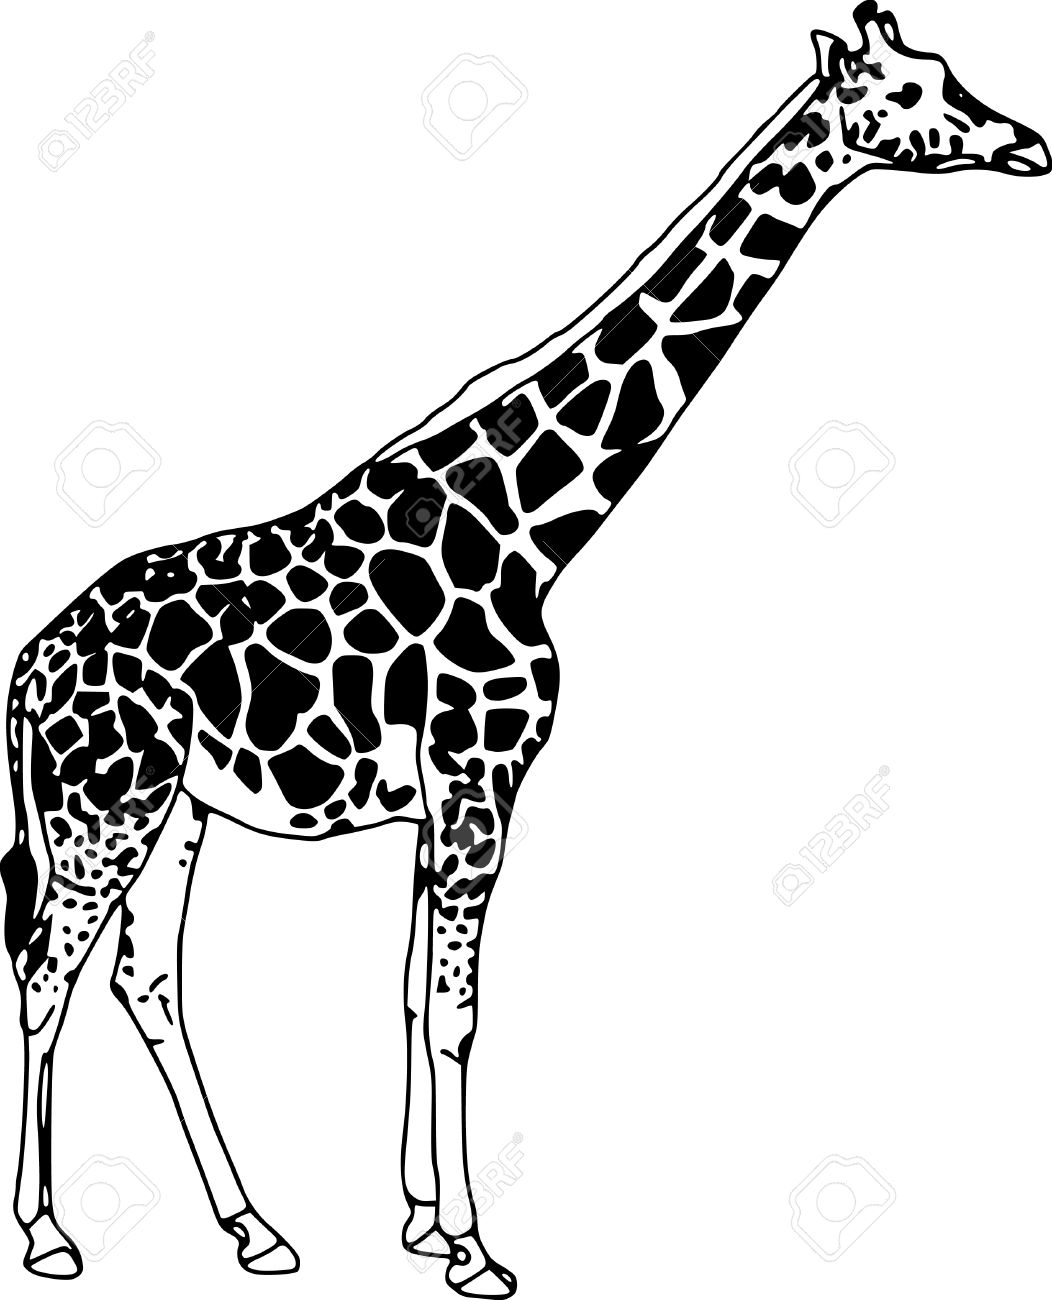 vector - contour giraffe isolated on white background Stock Vector - 4984256